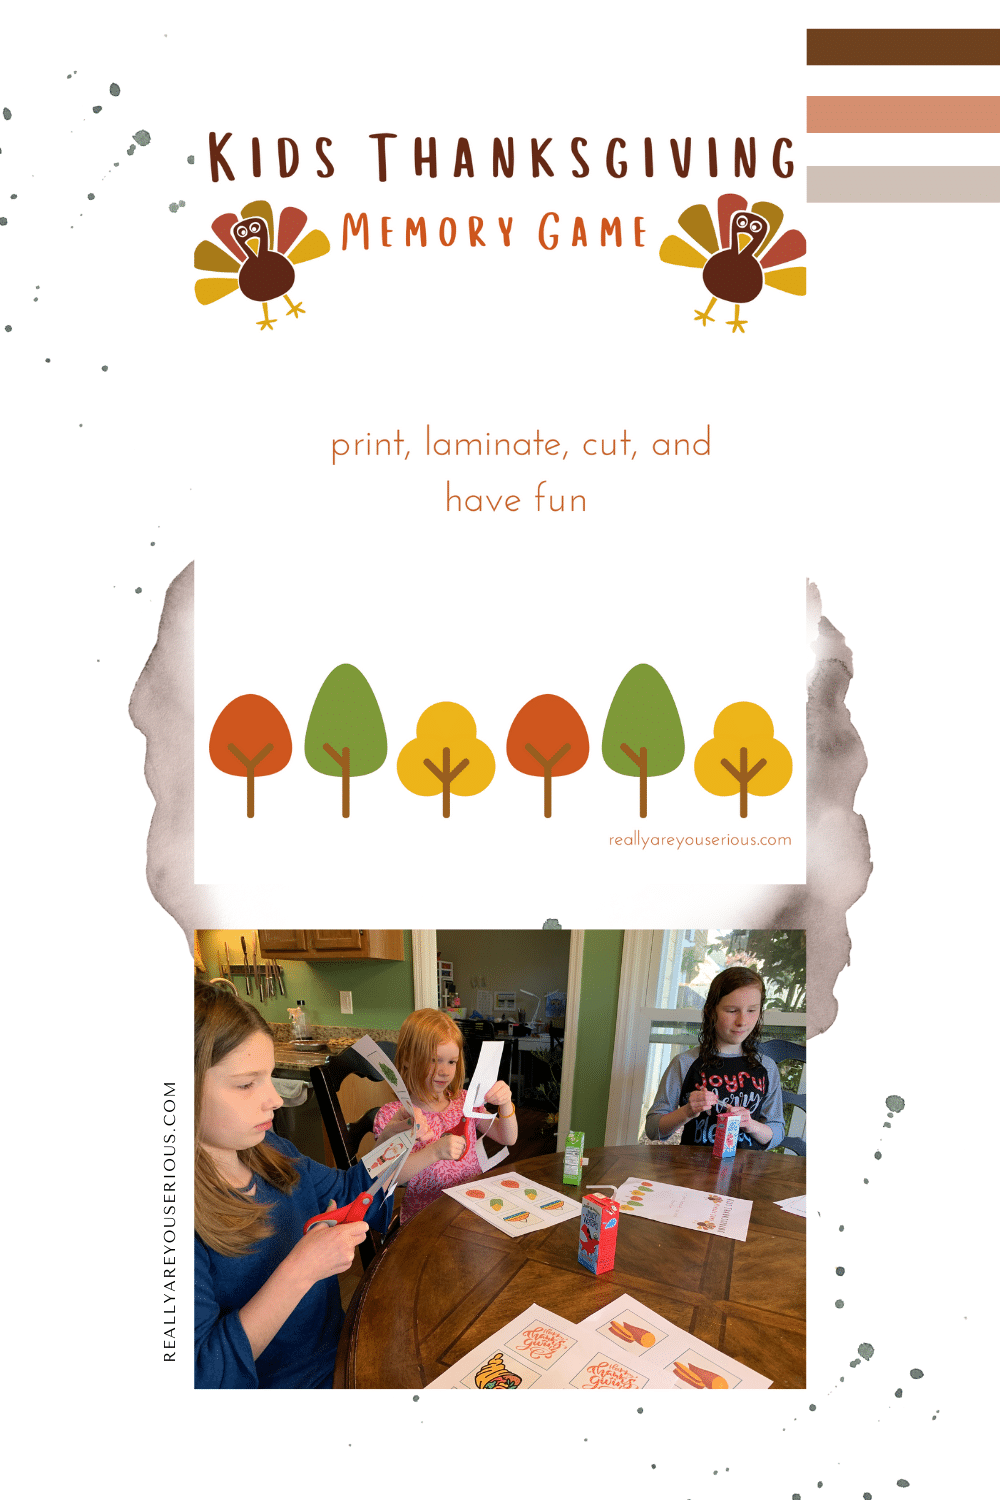 Kids Thanksgiving Memory Game